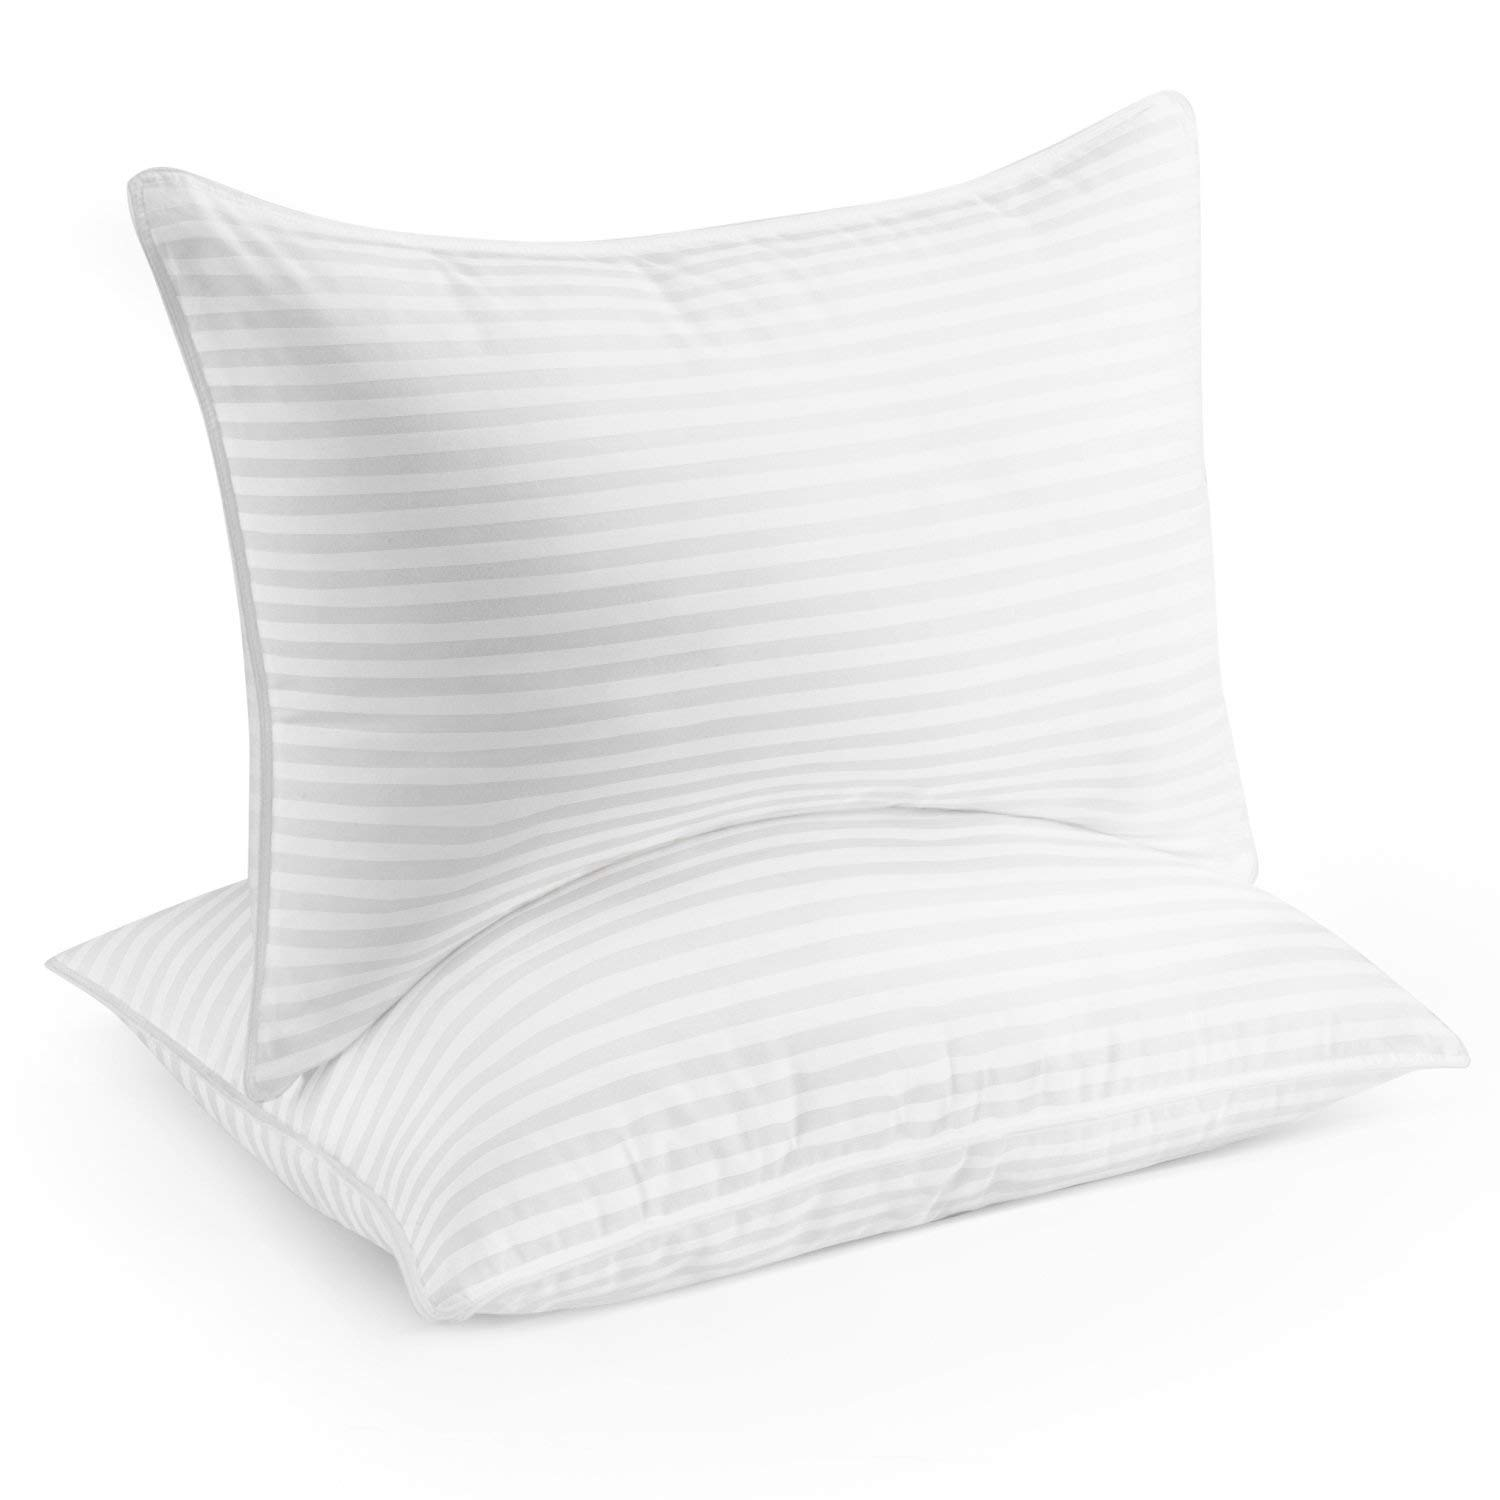 Beckham Hotel Collection Gel Pillow (2-Pack) - Luxury Plush Gel Pillow - Dust Mite Resistant & Hypoallergenic - Queen sleep pillows Sleep pillows review – buying guide and review for sleep pillows 61Z7rY8IUjL